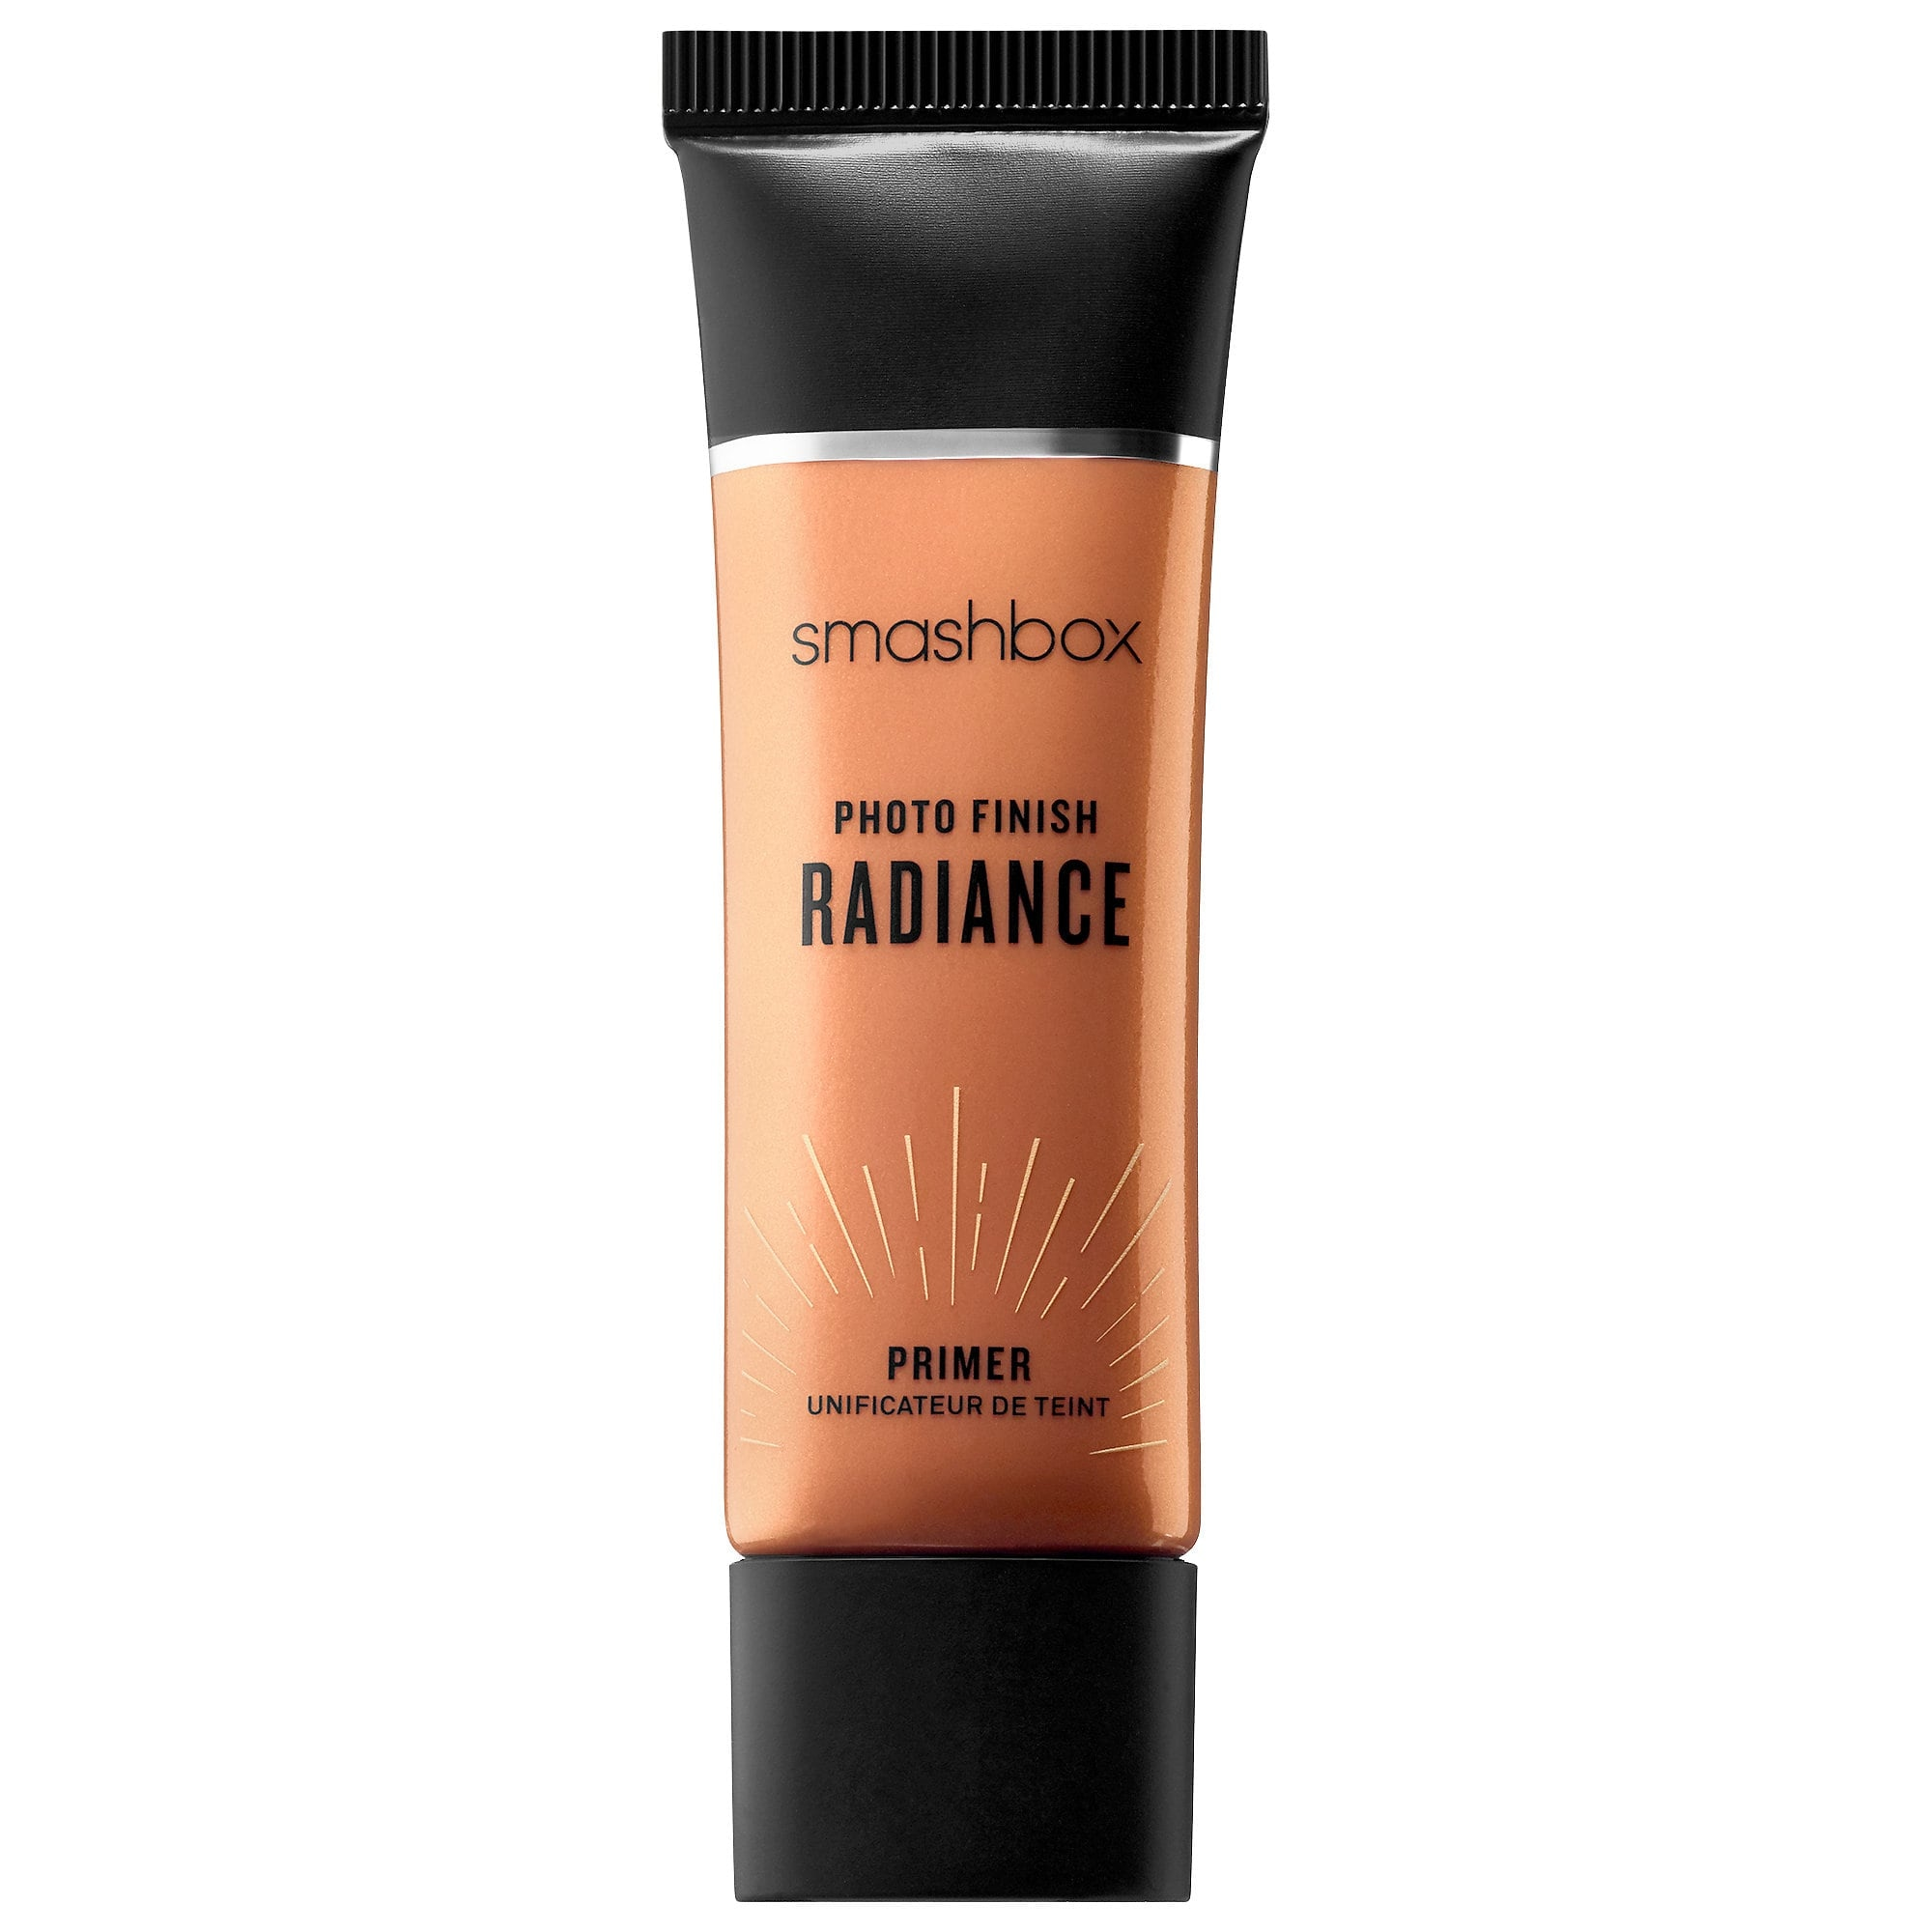 PHOTO FINISH RADIANCE PRIMER TRAVEL SIZE (PRIMER QUE ILUMINA Y DA UN GLOW NATURAL TAMAÑO VIAJE)